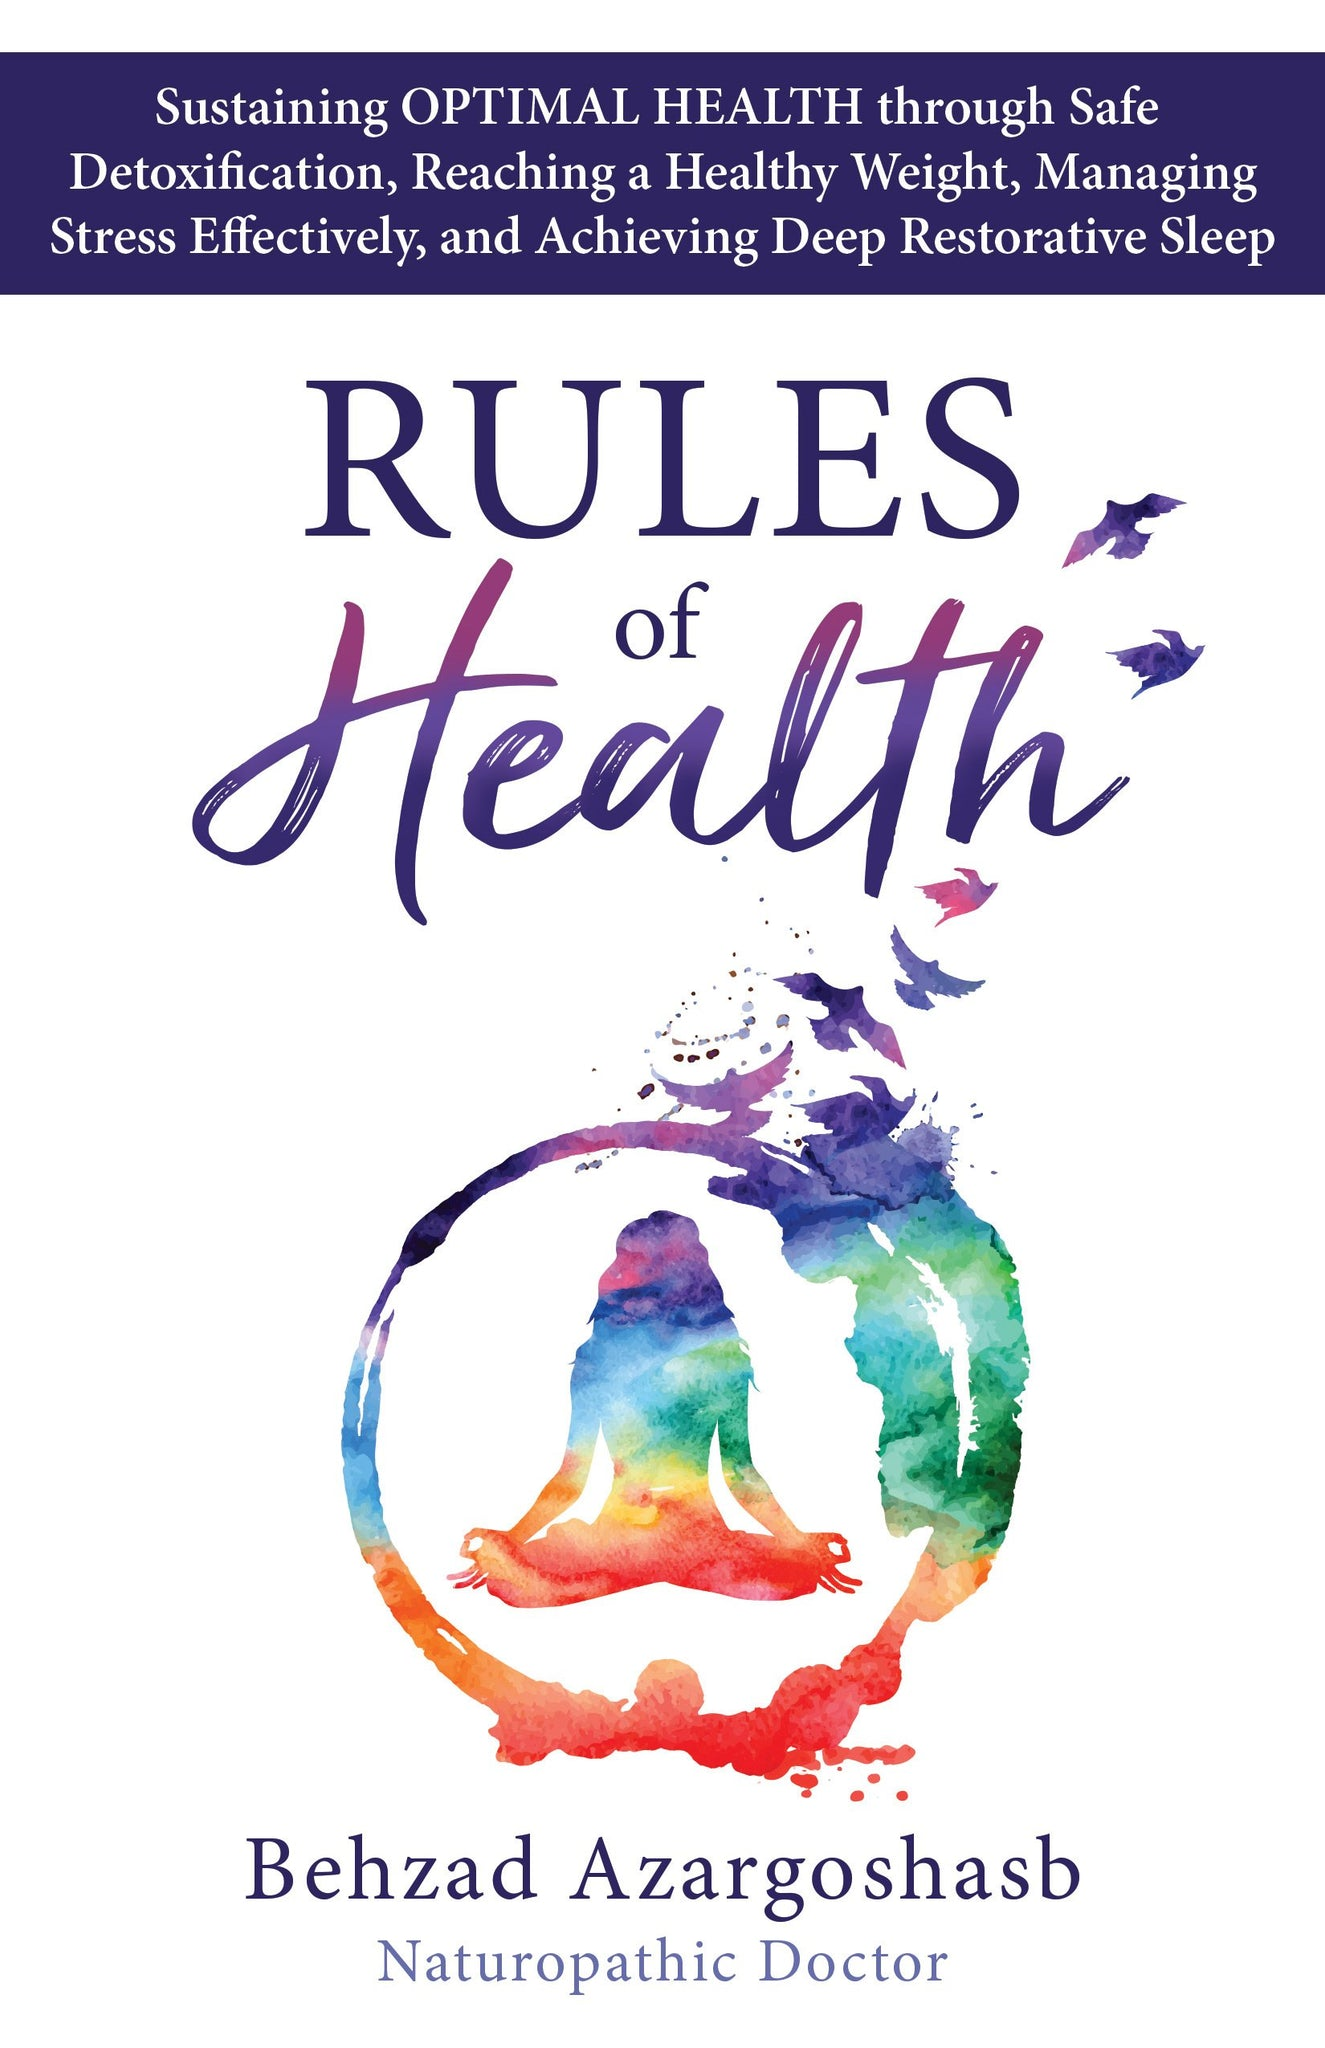 Rules of Health